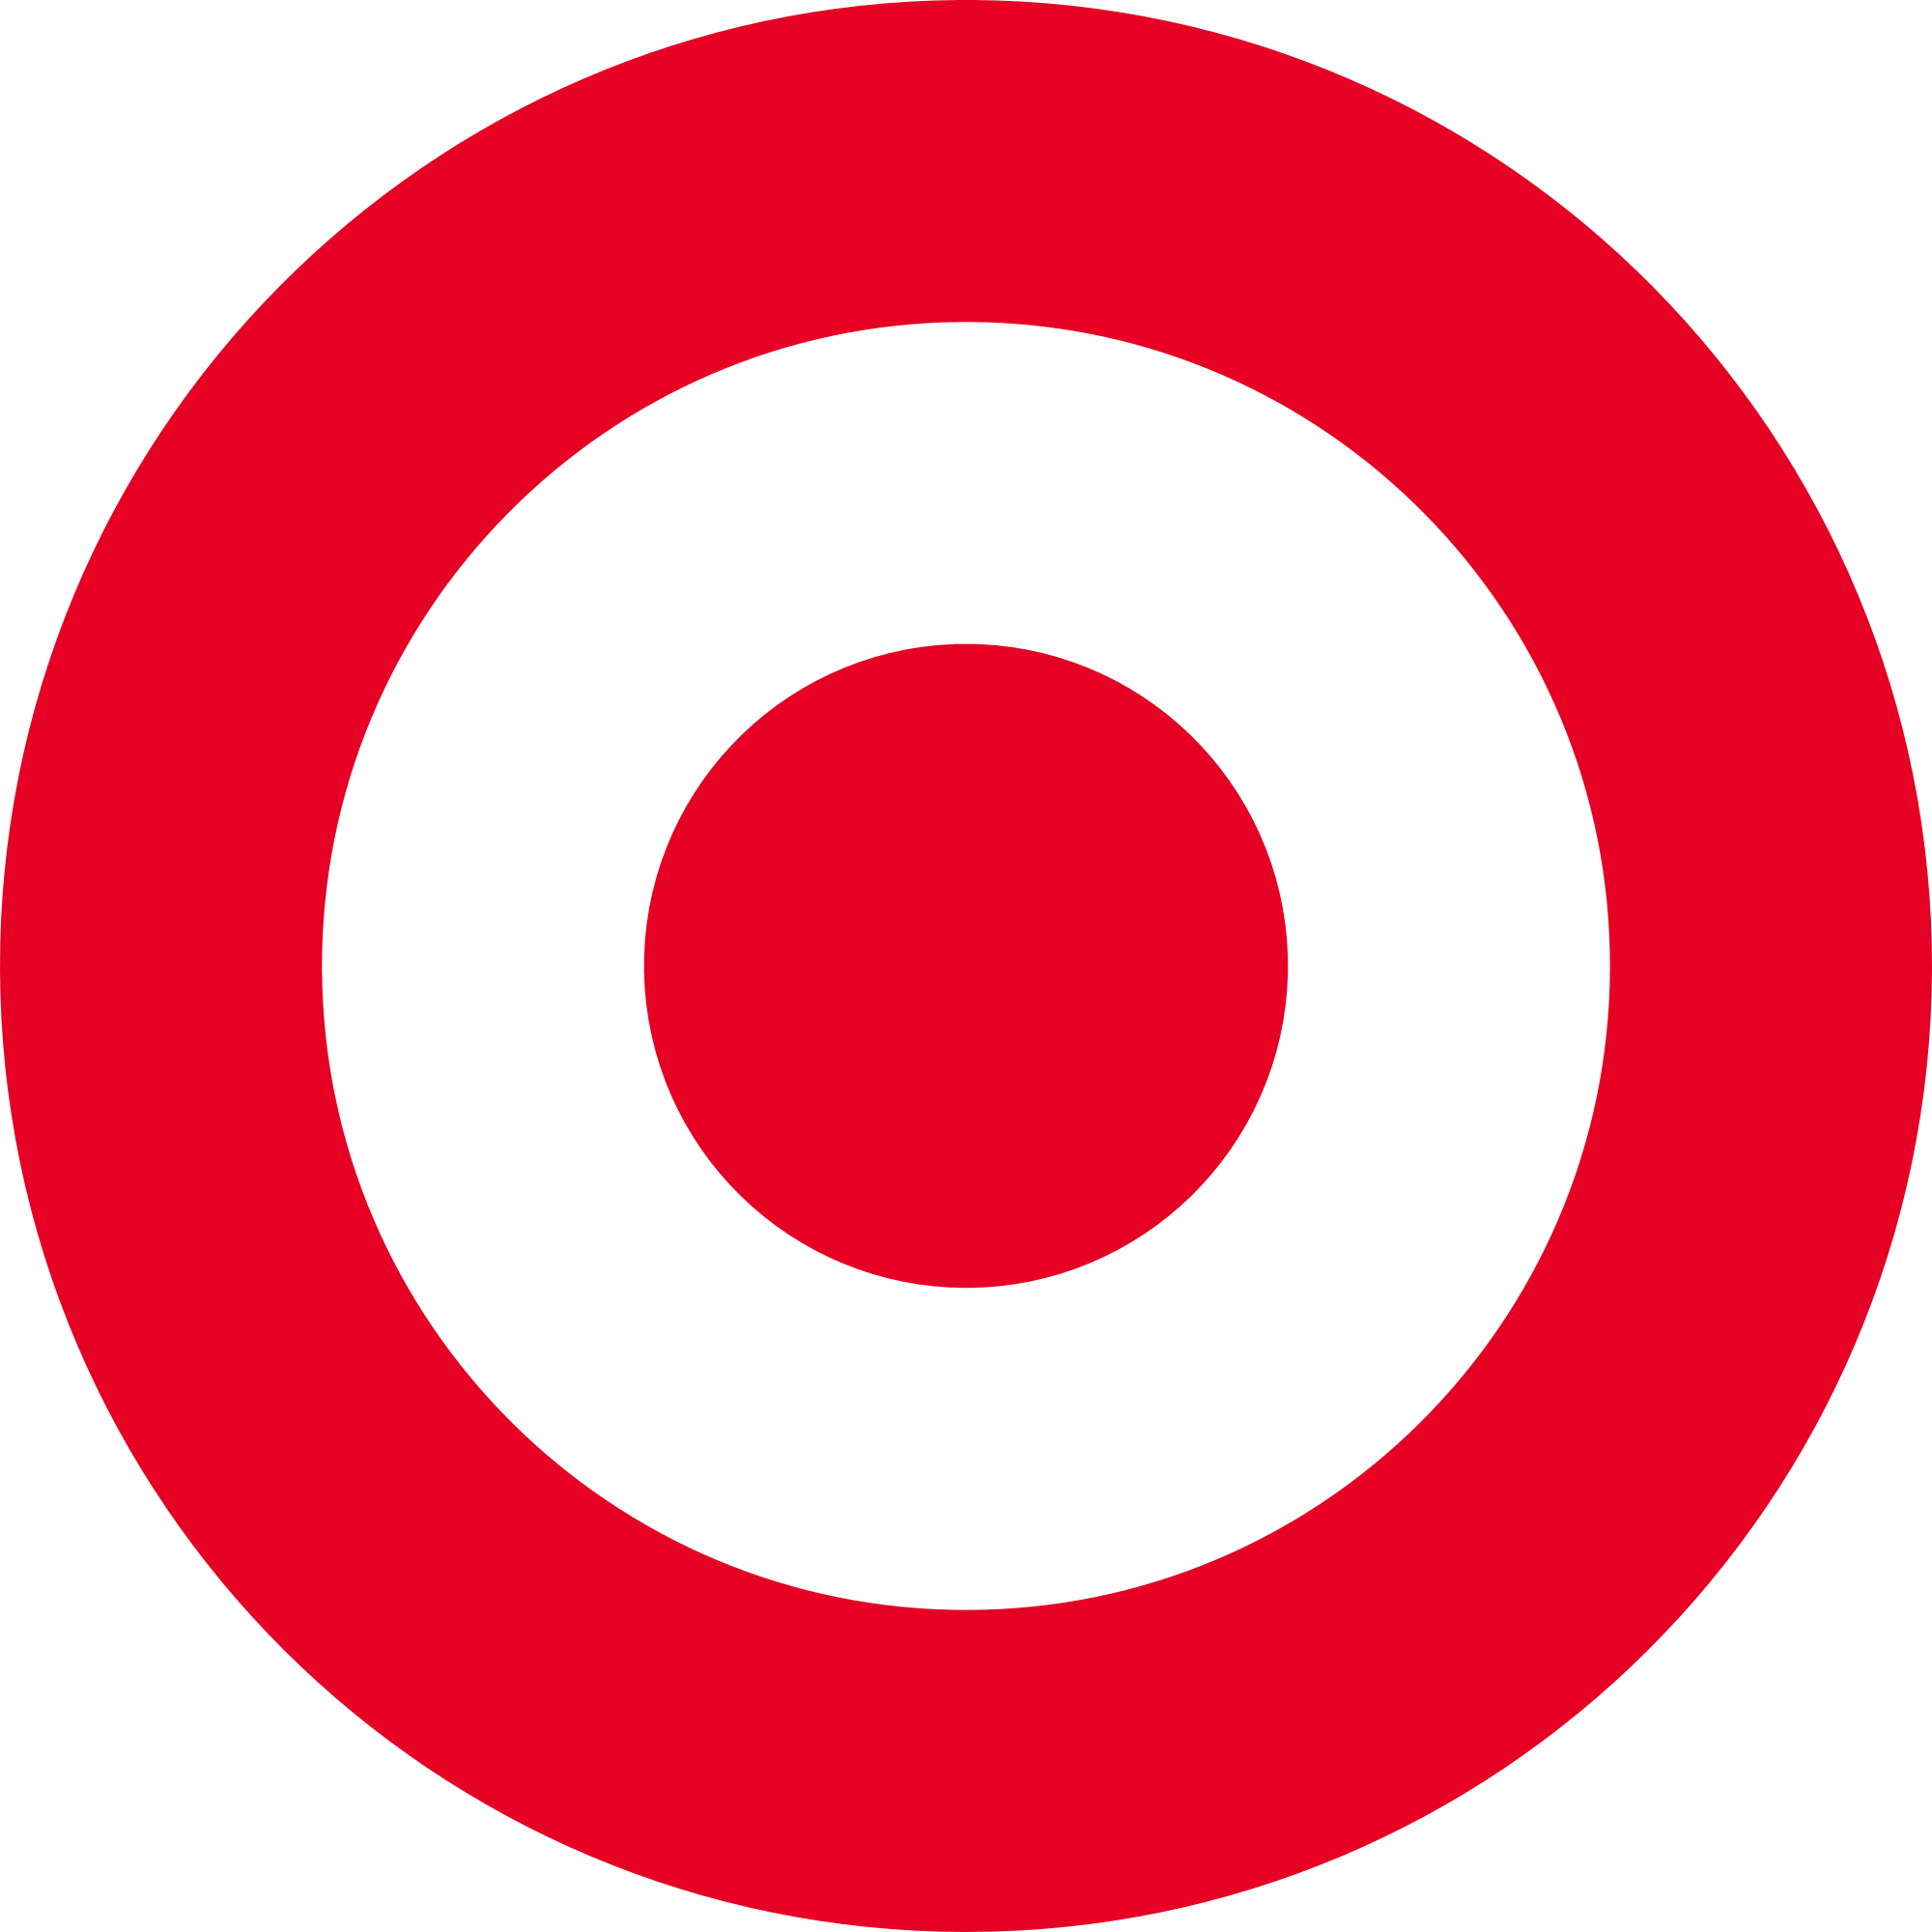 TARGET Latest To Succumb To Liberal Economics – Raising Wages, Cutting Hours